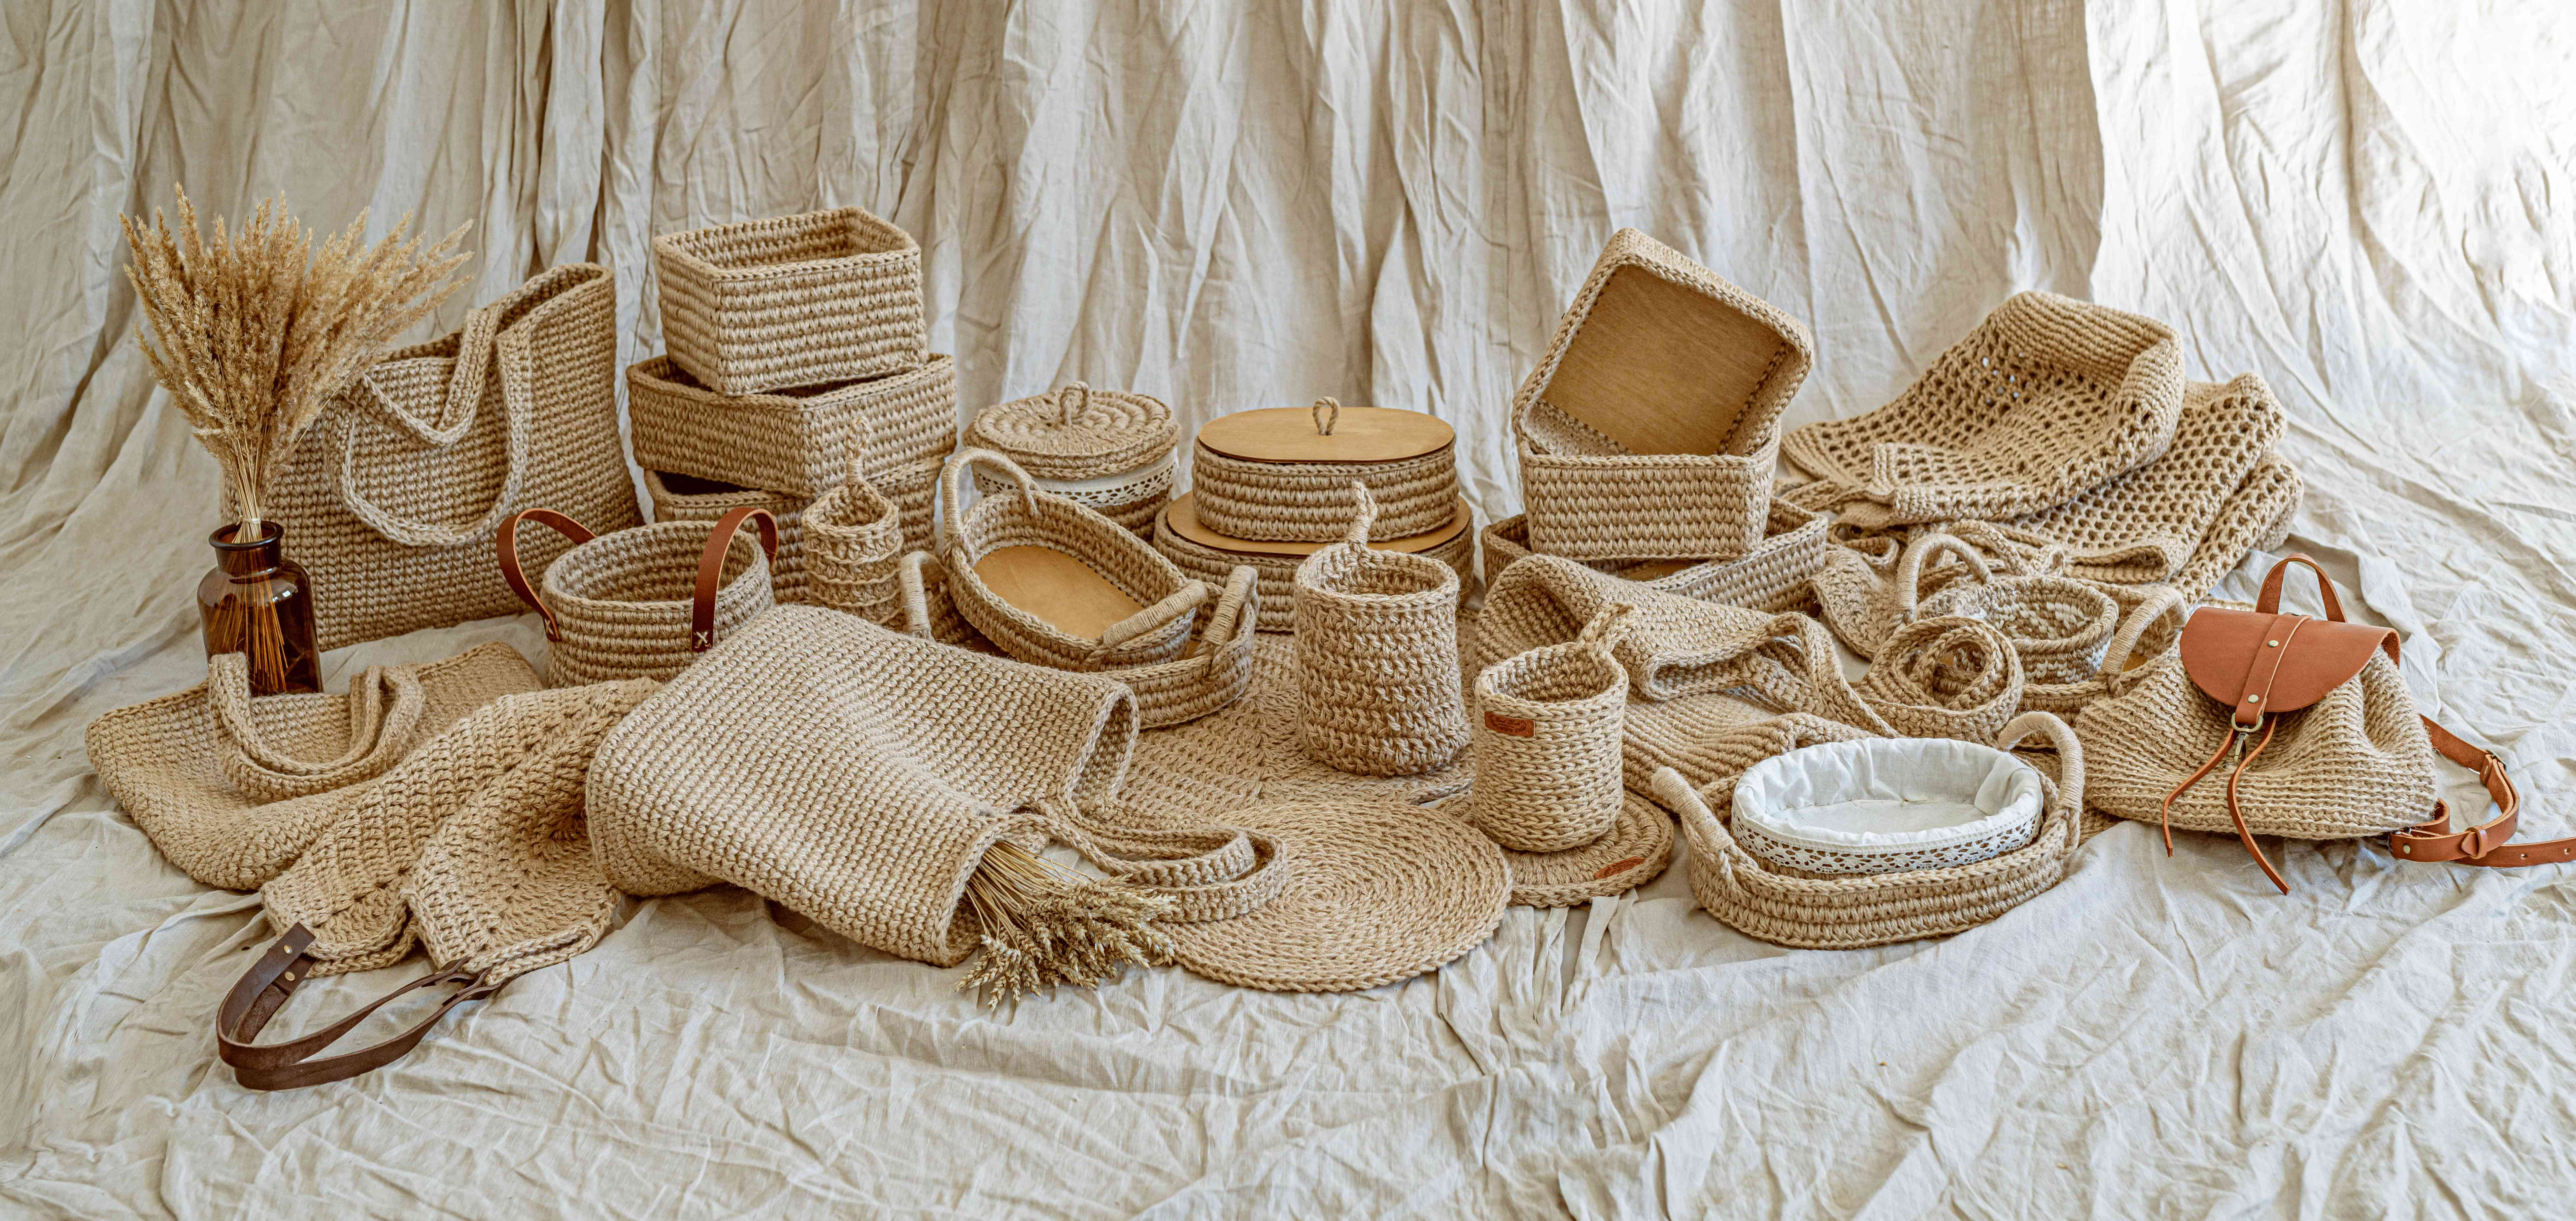 Handmade natural jute knitted items for home decoration, scandinavian style, beige tones no people, sustainable decor and interior details